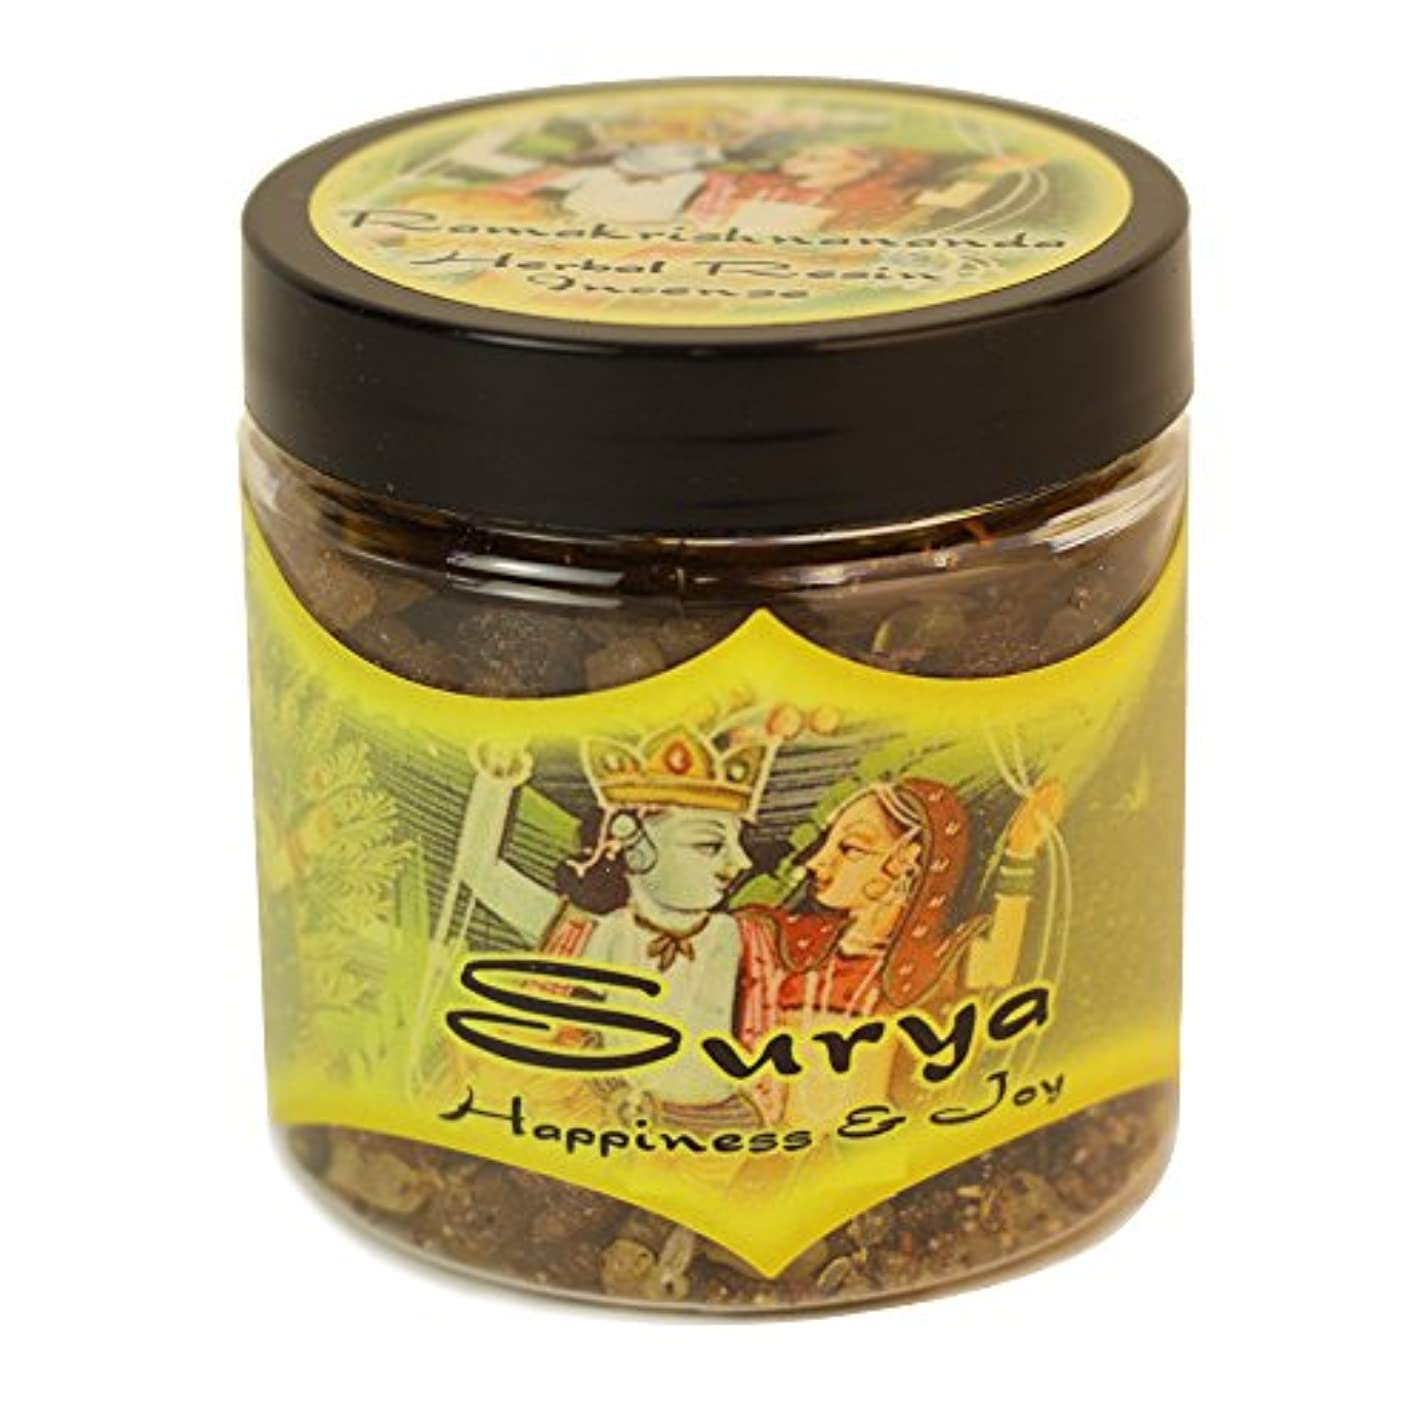 衣装ギャングキャビン樹脂Incense Surya – Happiness and Joy – 2.4oz Jar